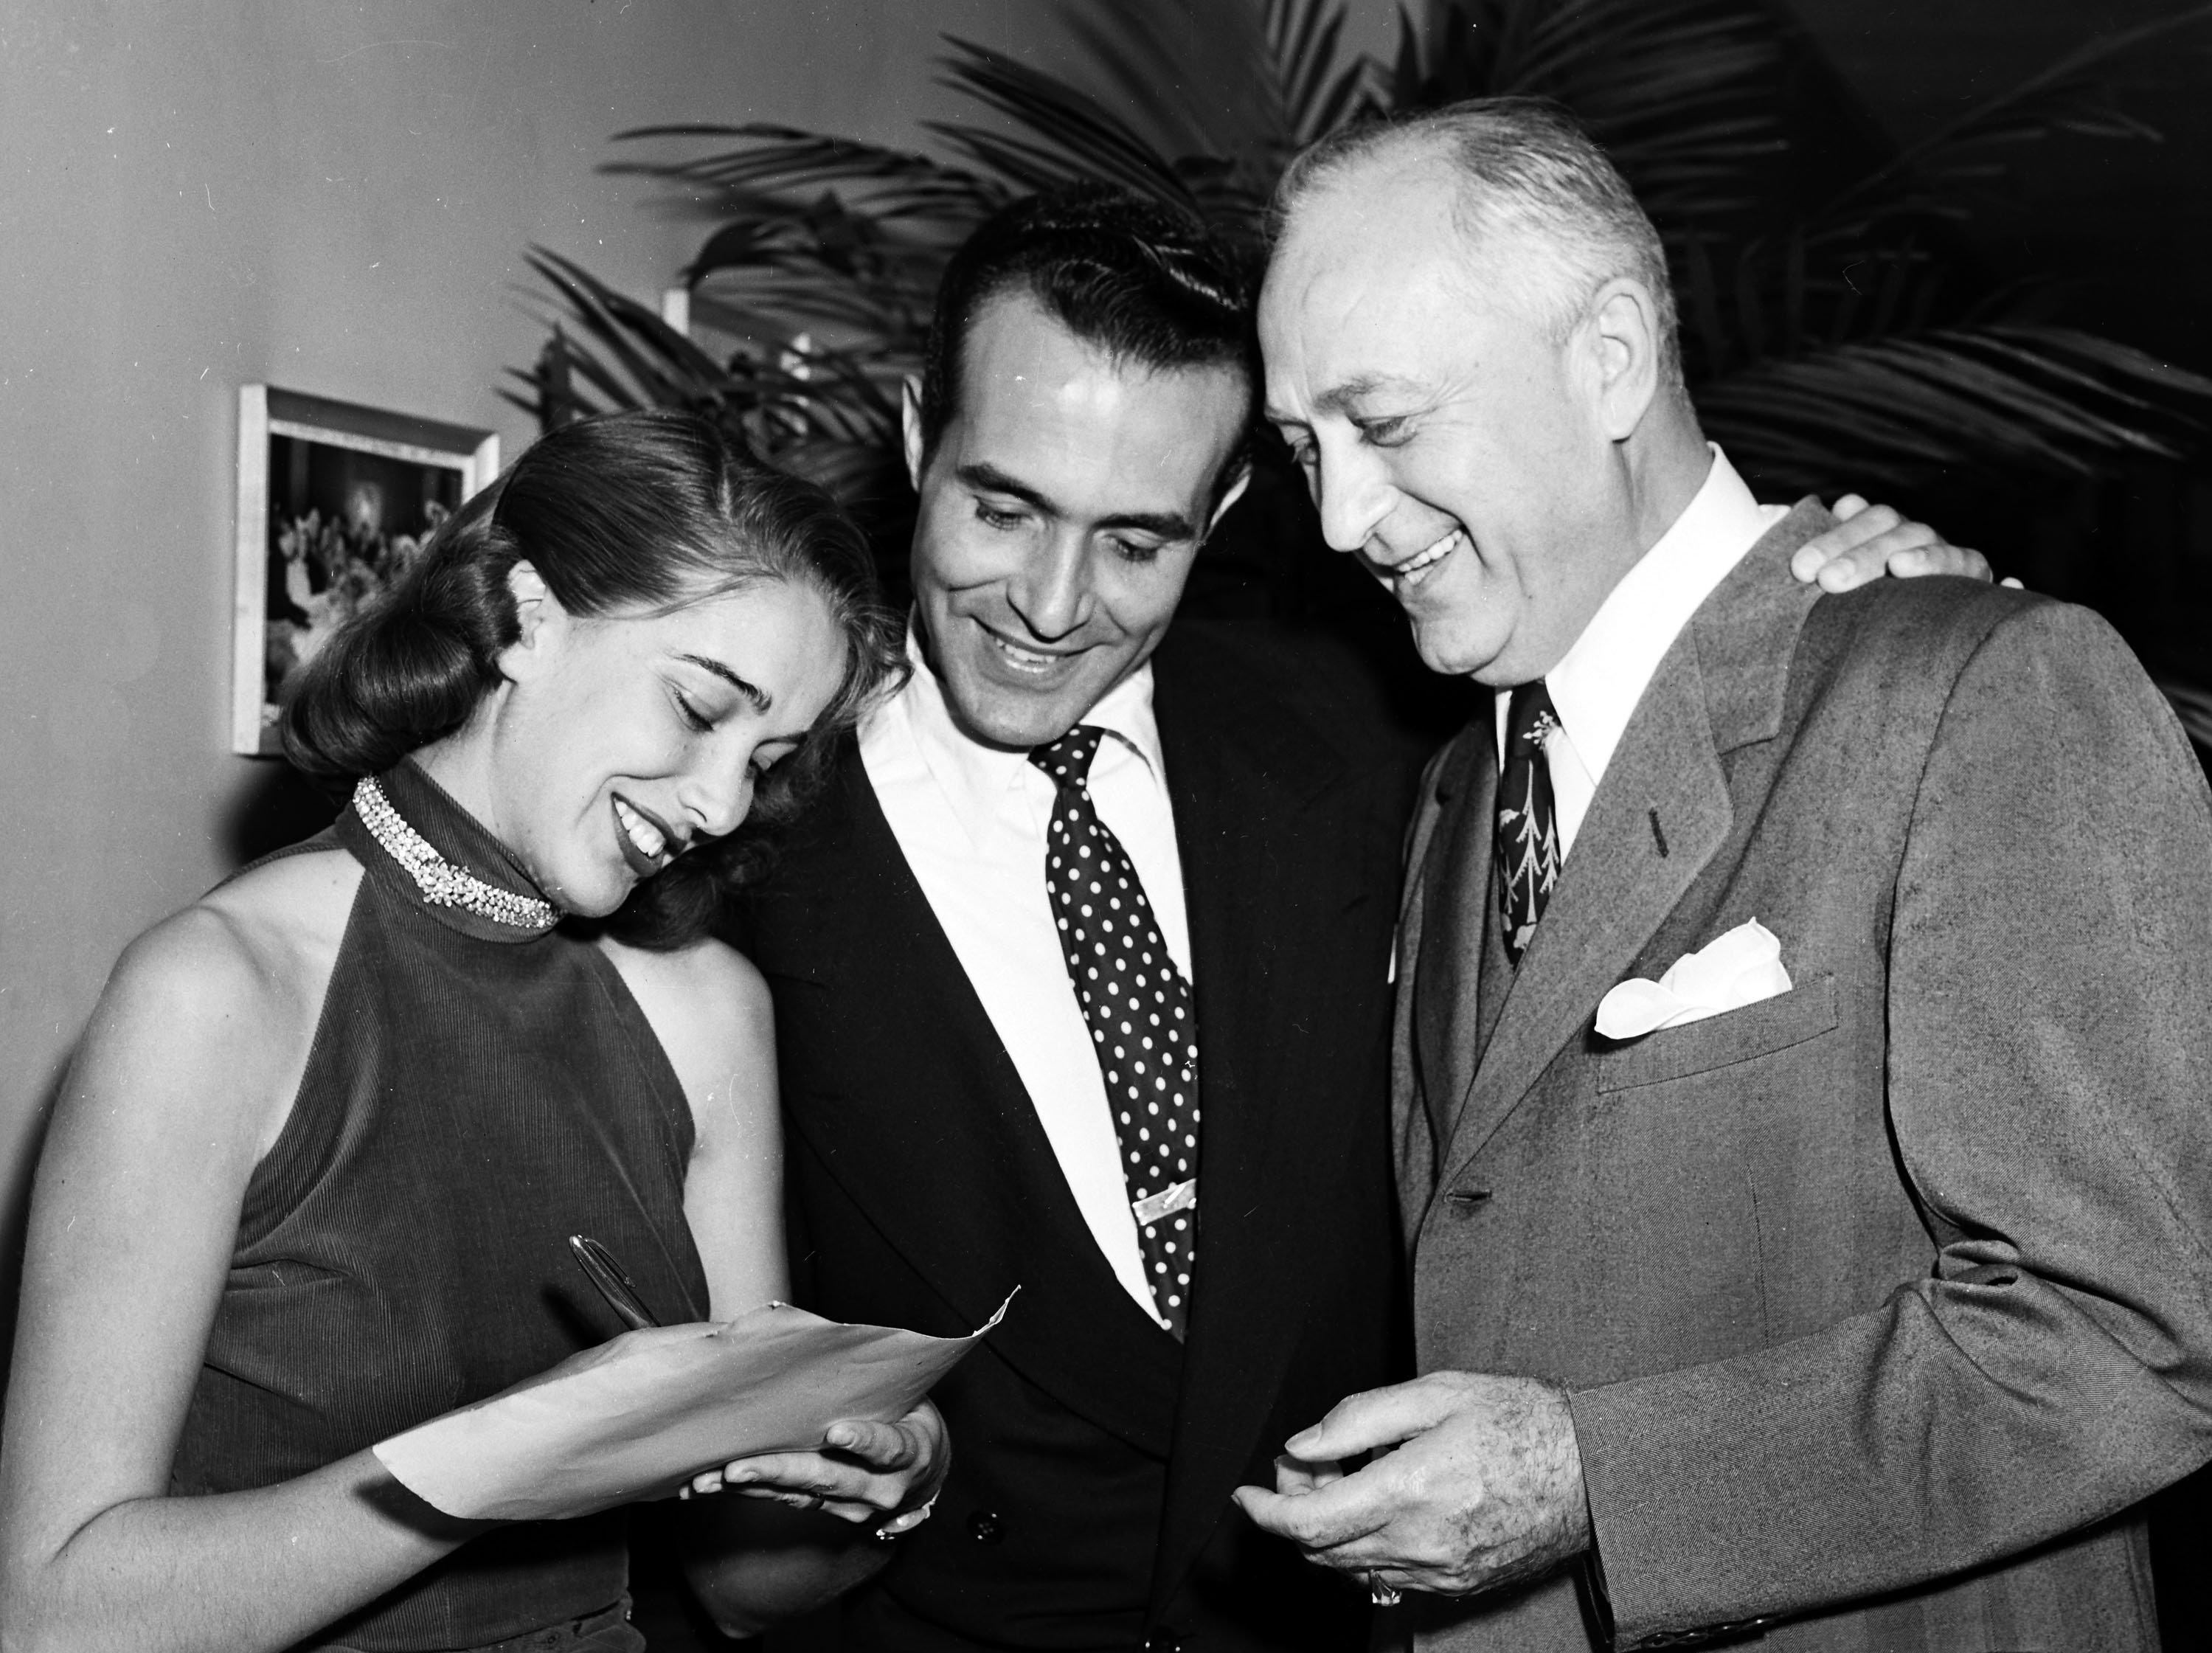 Pert Julia Adams, who went to Hollywood from Little Rock, autographed a picture for the Variety Club in October 1951.  Naturally pleased was M.A. Lightman (Right), president of Malco, Inc. Waiting his turn was Ricardo Montalban of Hollywood.